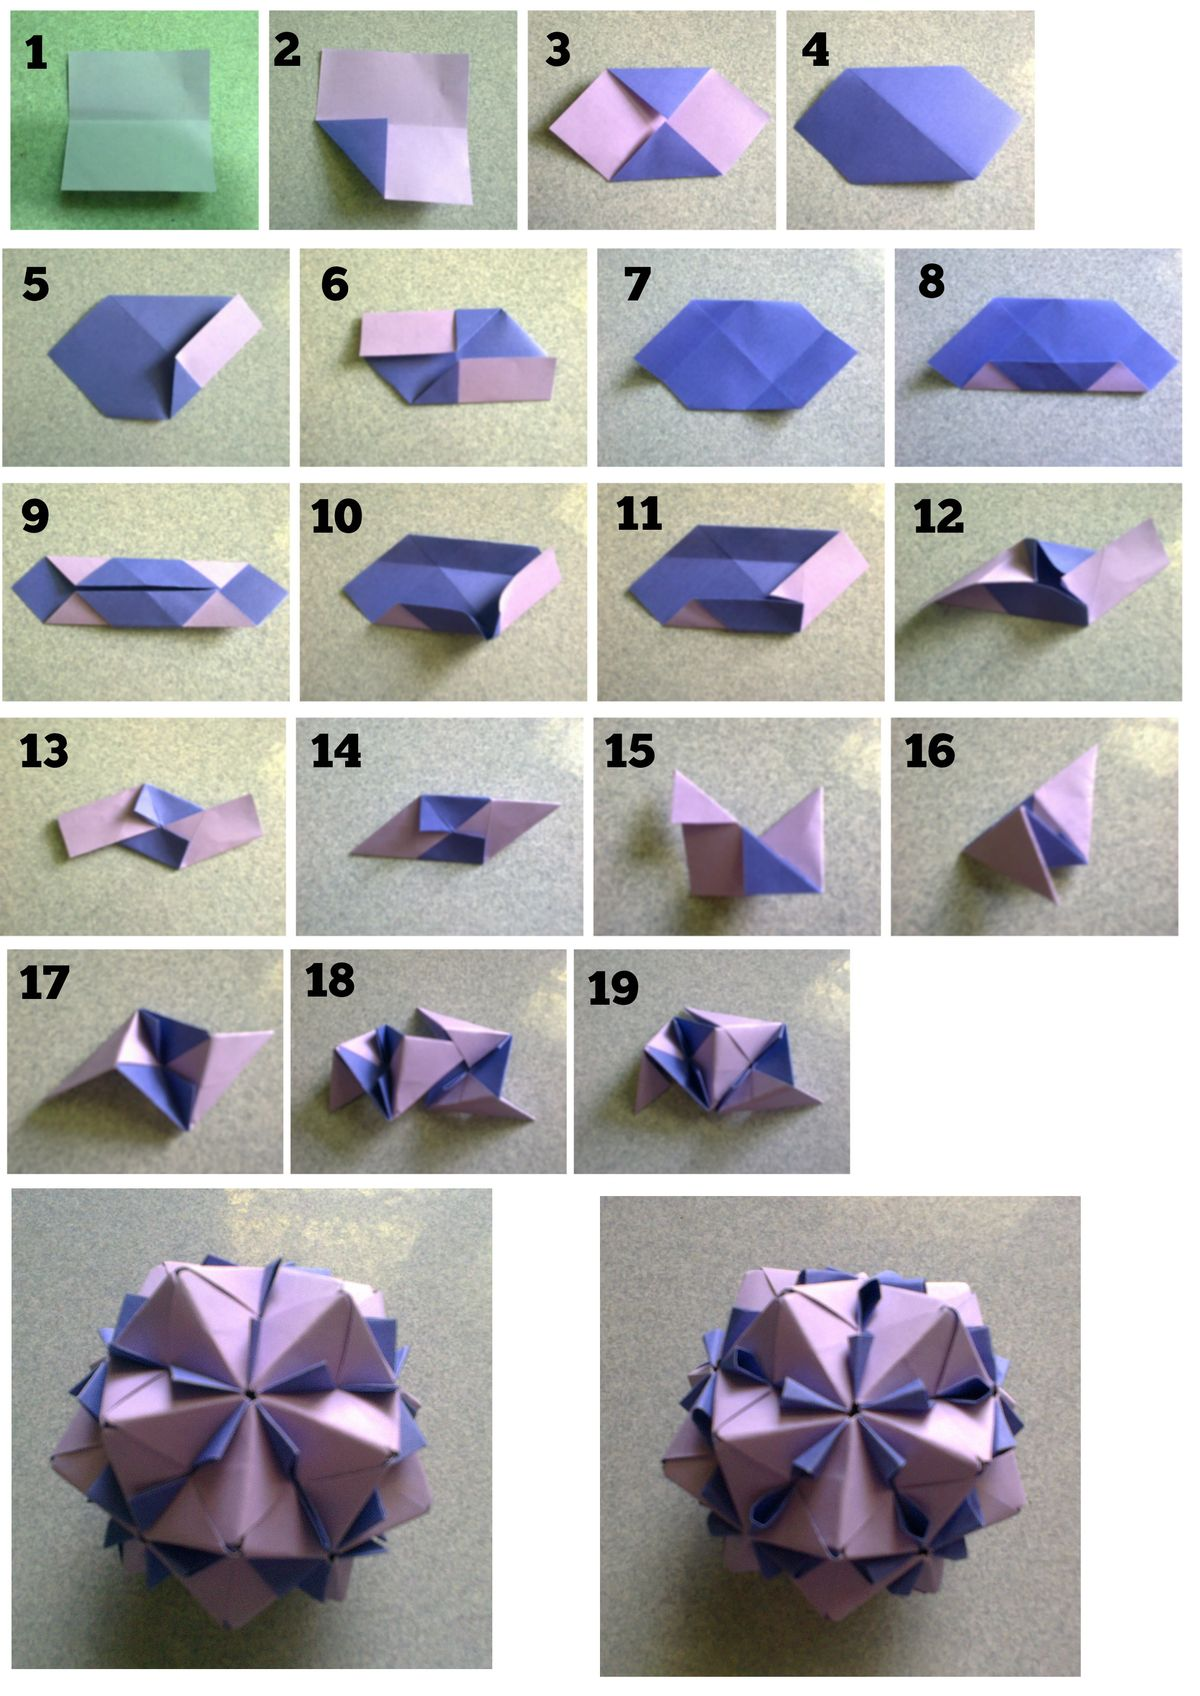 1000+ images about Modular Origami... on Pinterest ... - photo#30